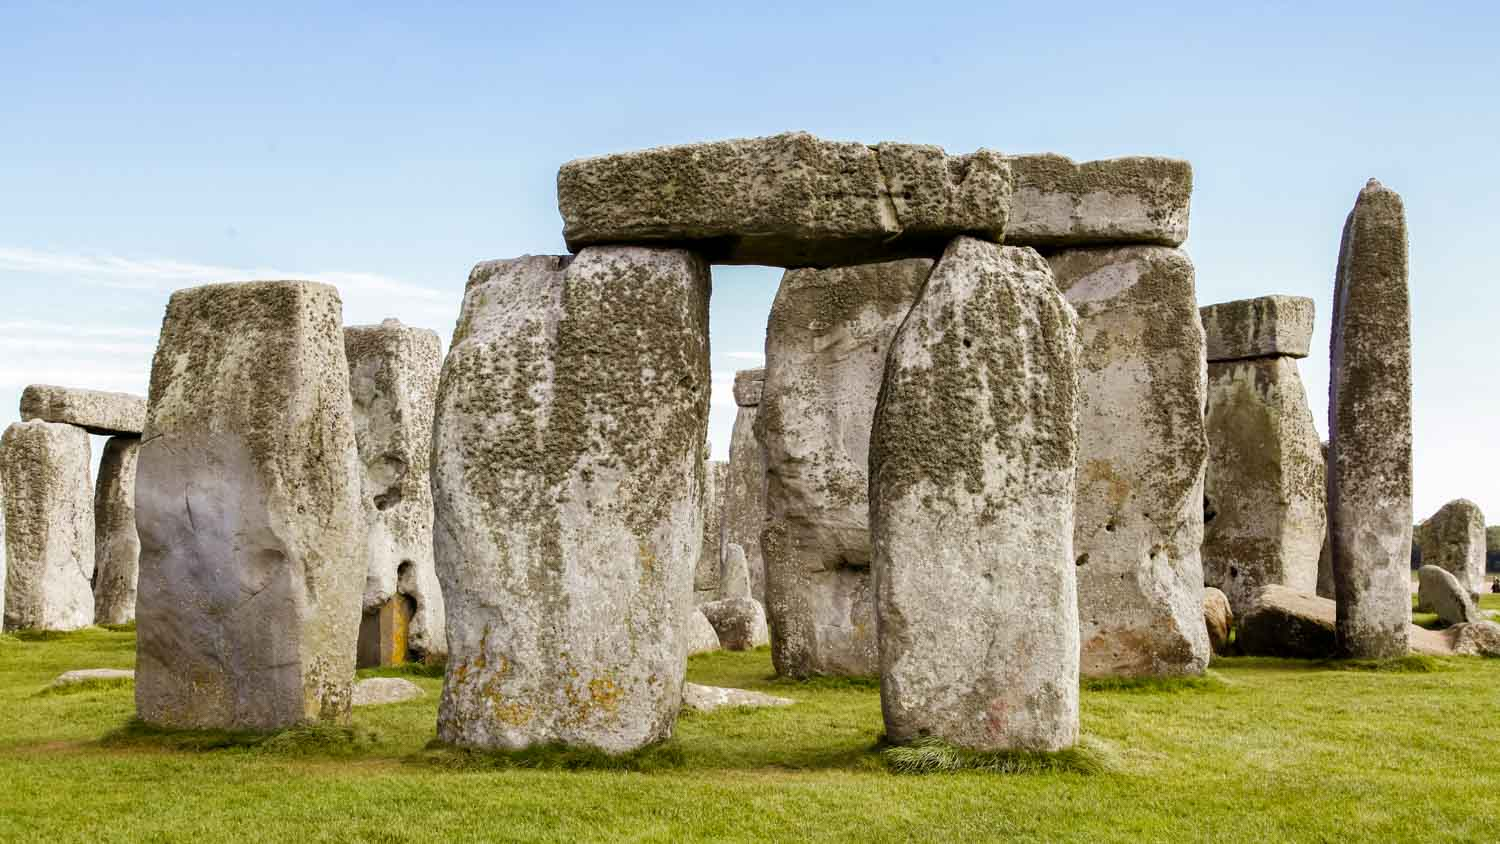 stonehenge radiocarbon dating The new radiocarbon dating also raises questions about a theory advanced by archaeologist mike parker pearson of the university of sheffield, who has long suggested that stonehenge was a massive .